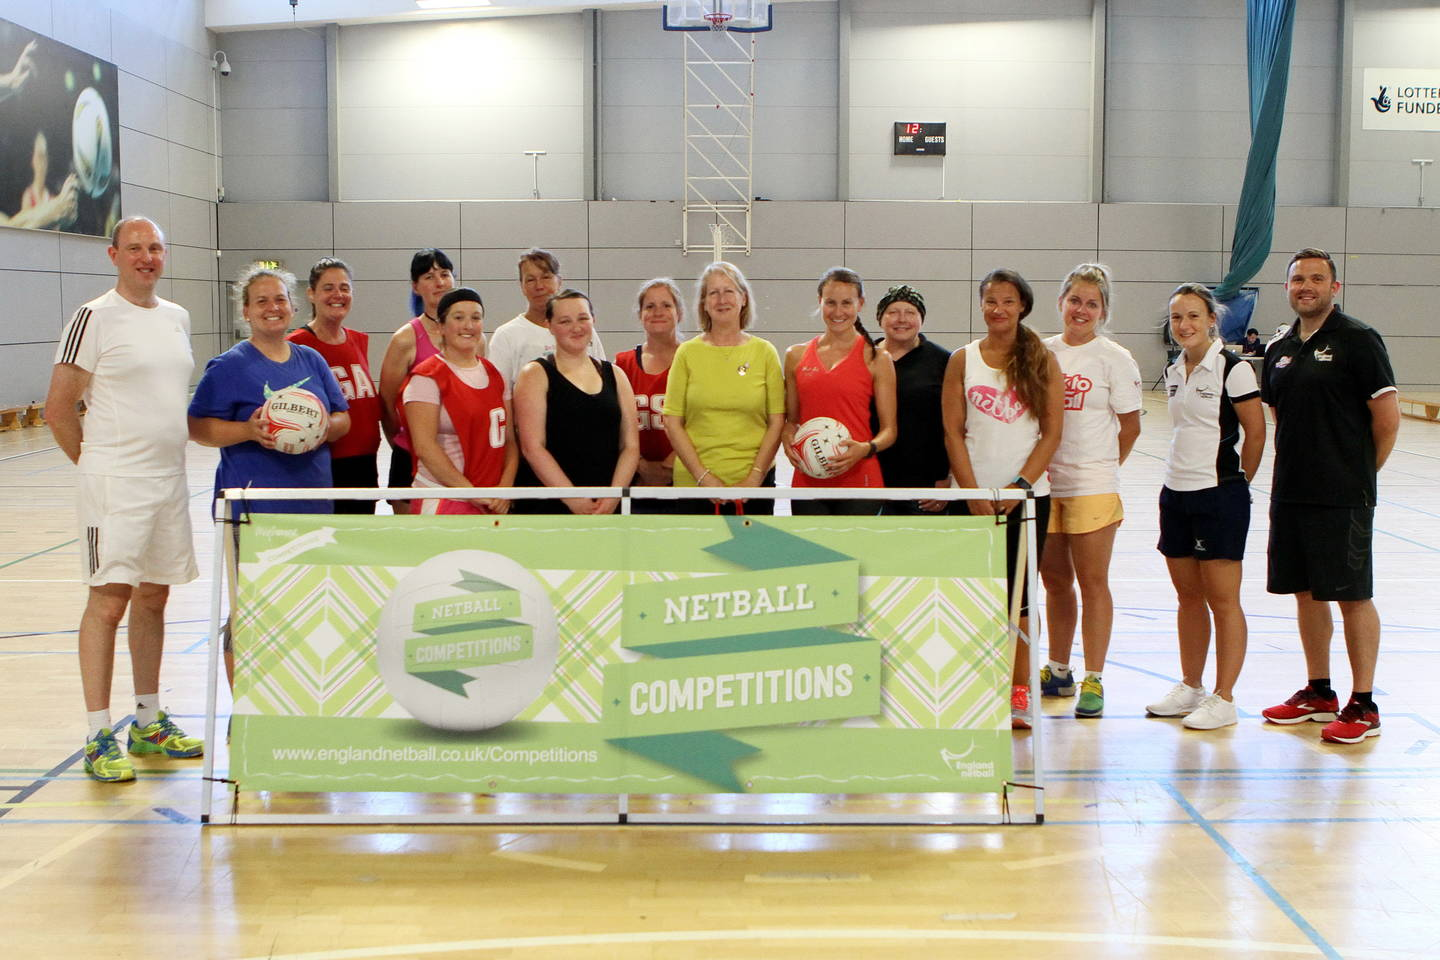 Group photo of players at netball training day